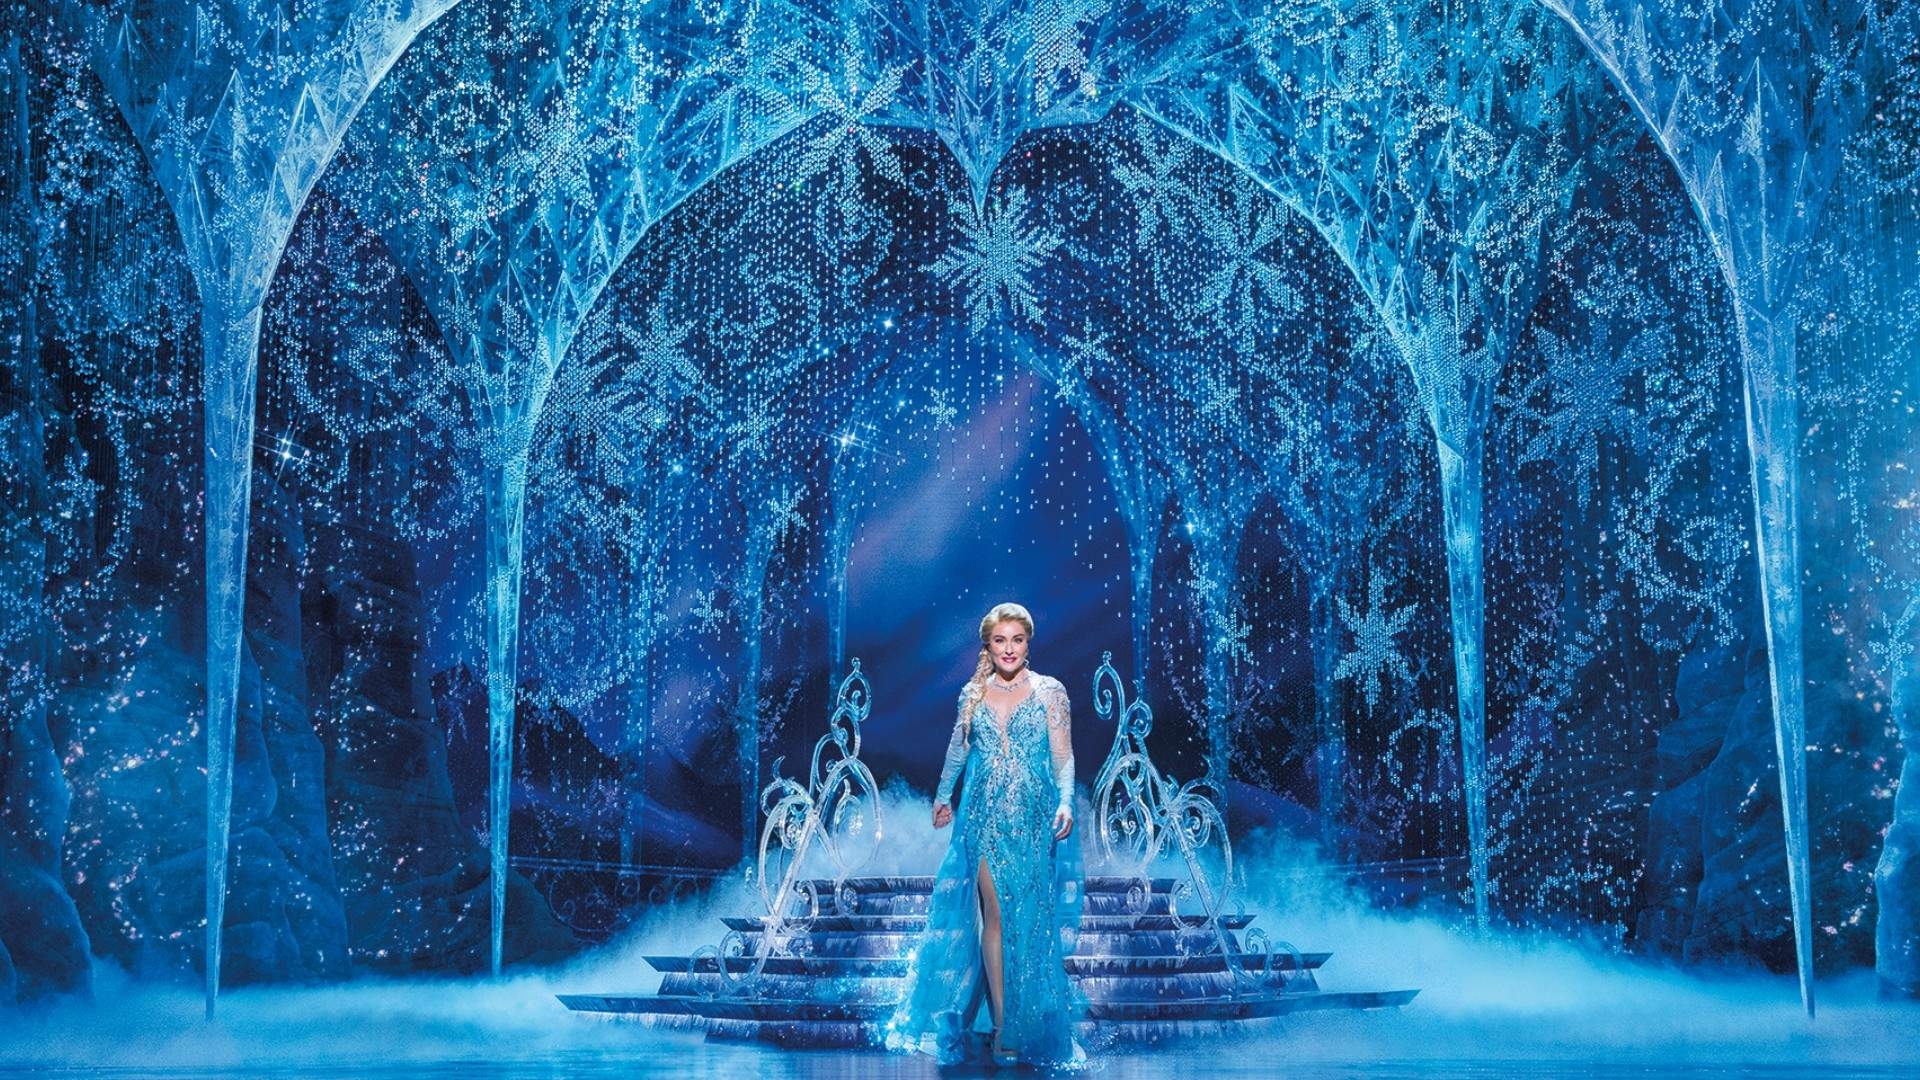 Four Things You Should Do After Seeing 'Frozen the Musical' to Make the Magic Last Longer